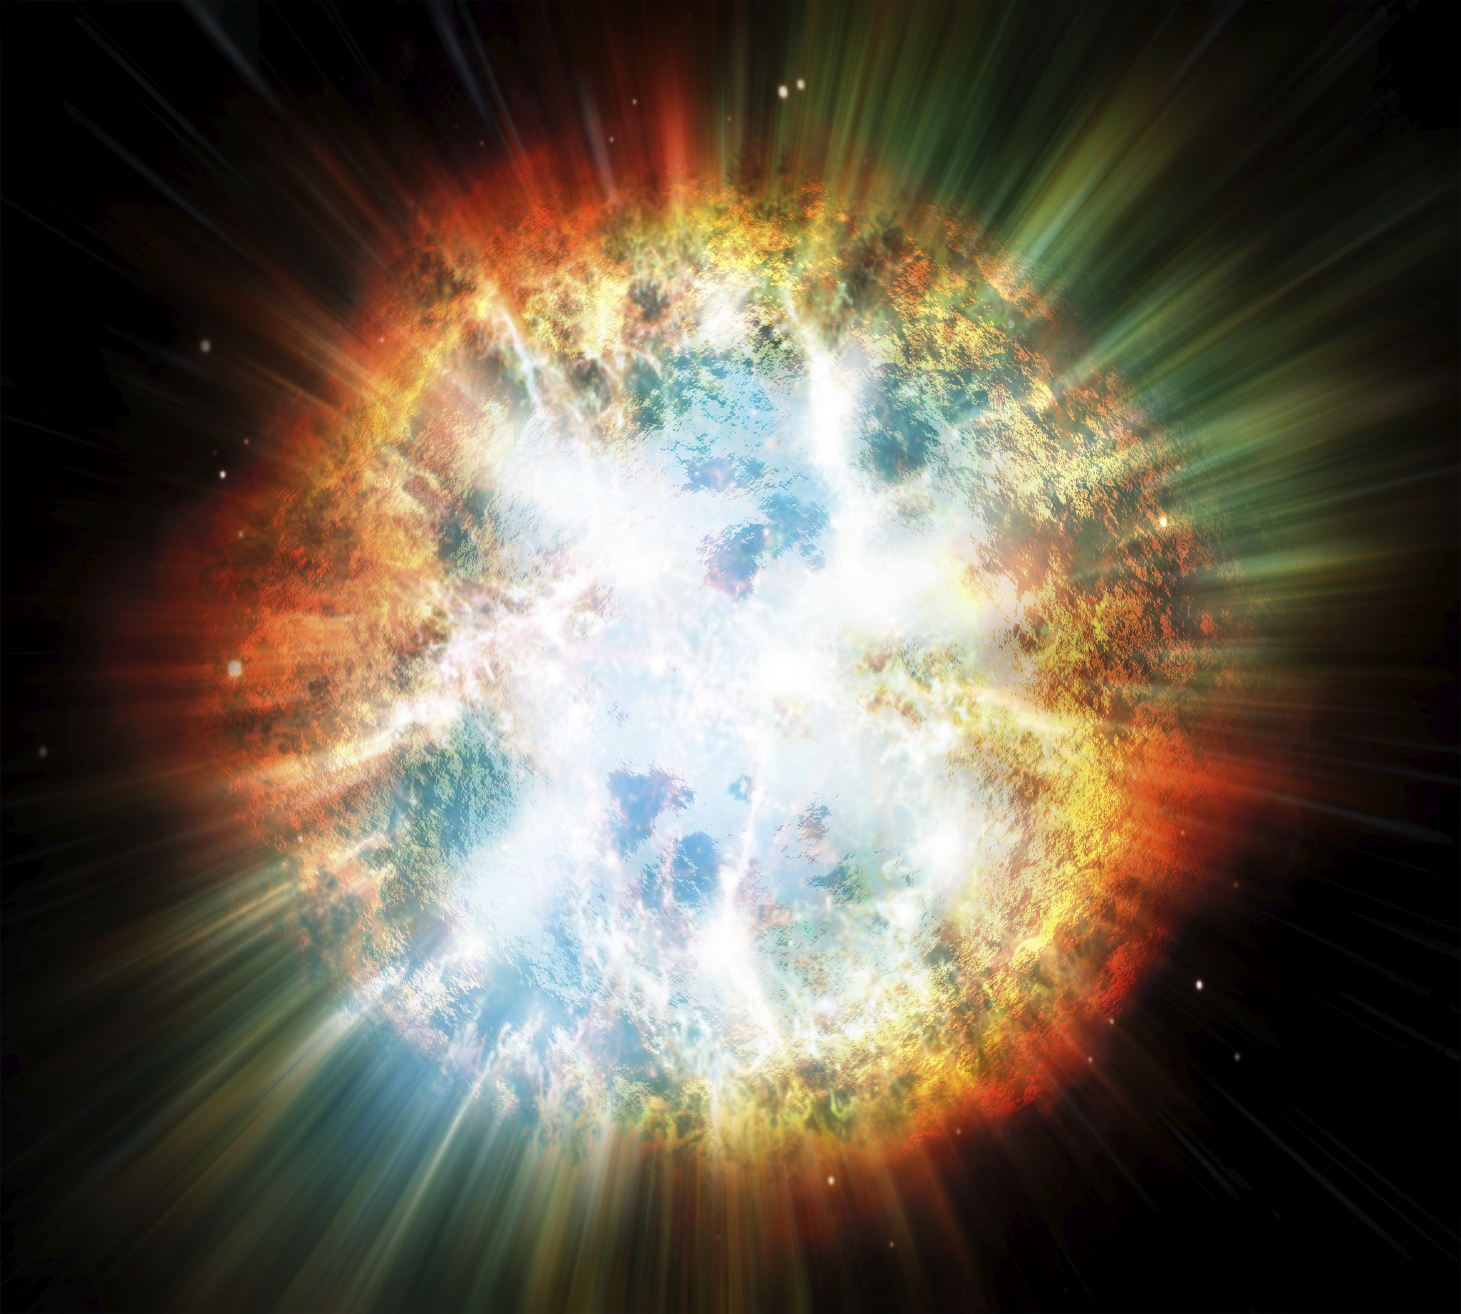 Explosion of planet or star